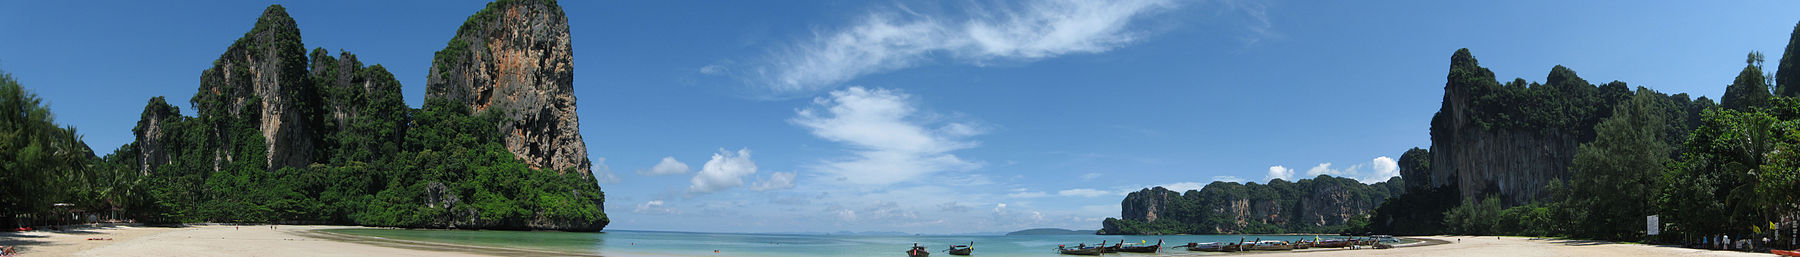 Railay Beach banner.jpg